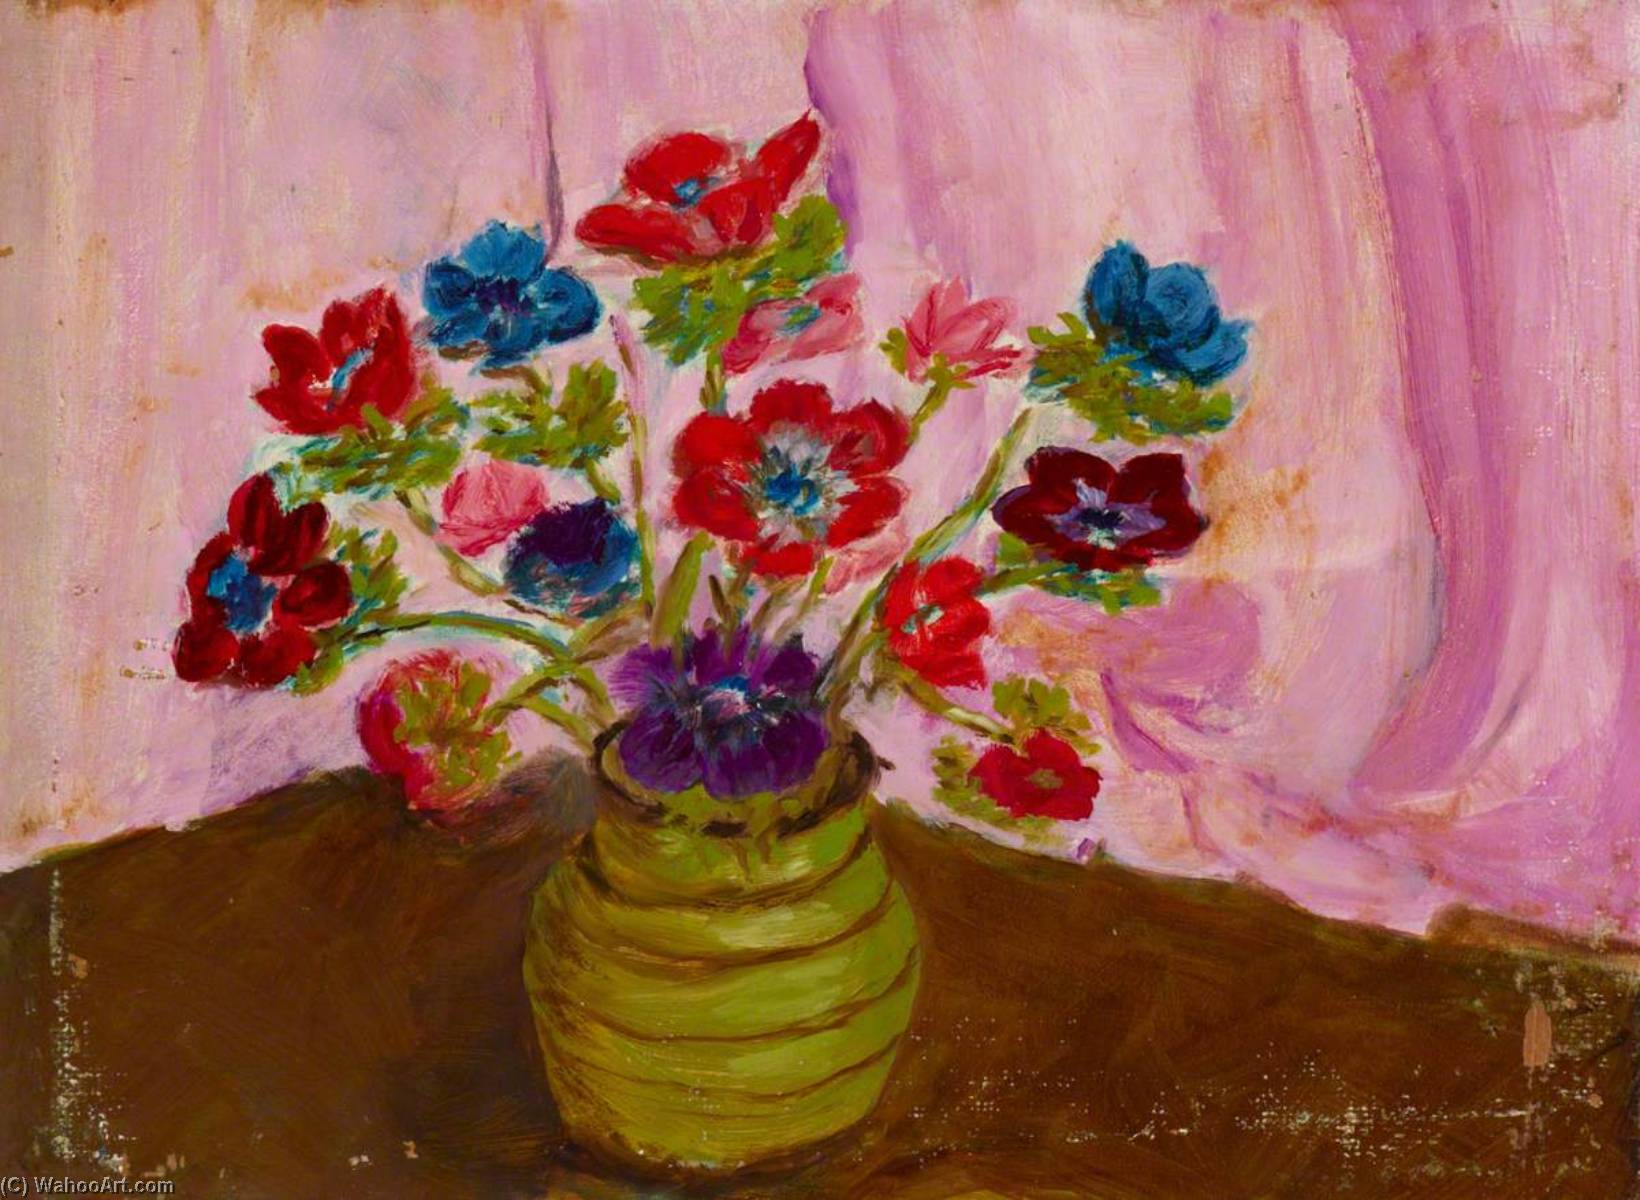 Vase of Flowers, Oil On Canvas by Myfanwy Baker